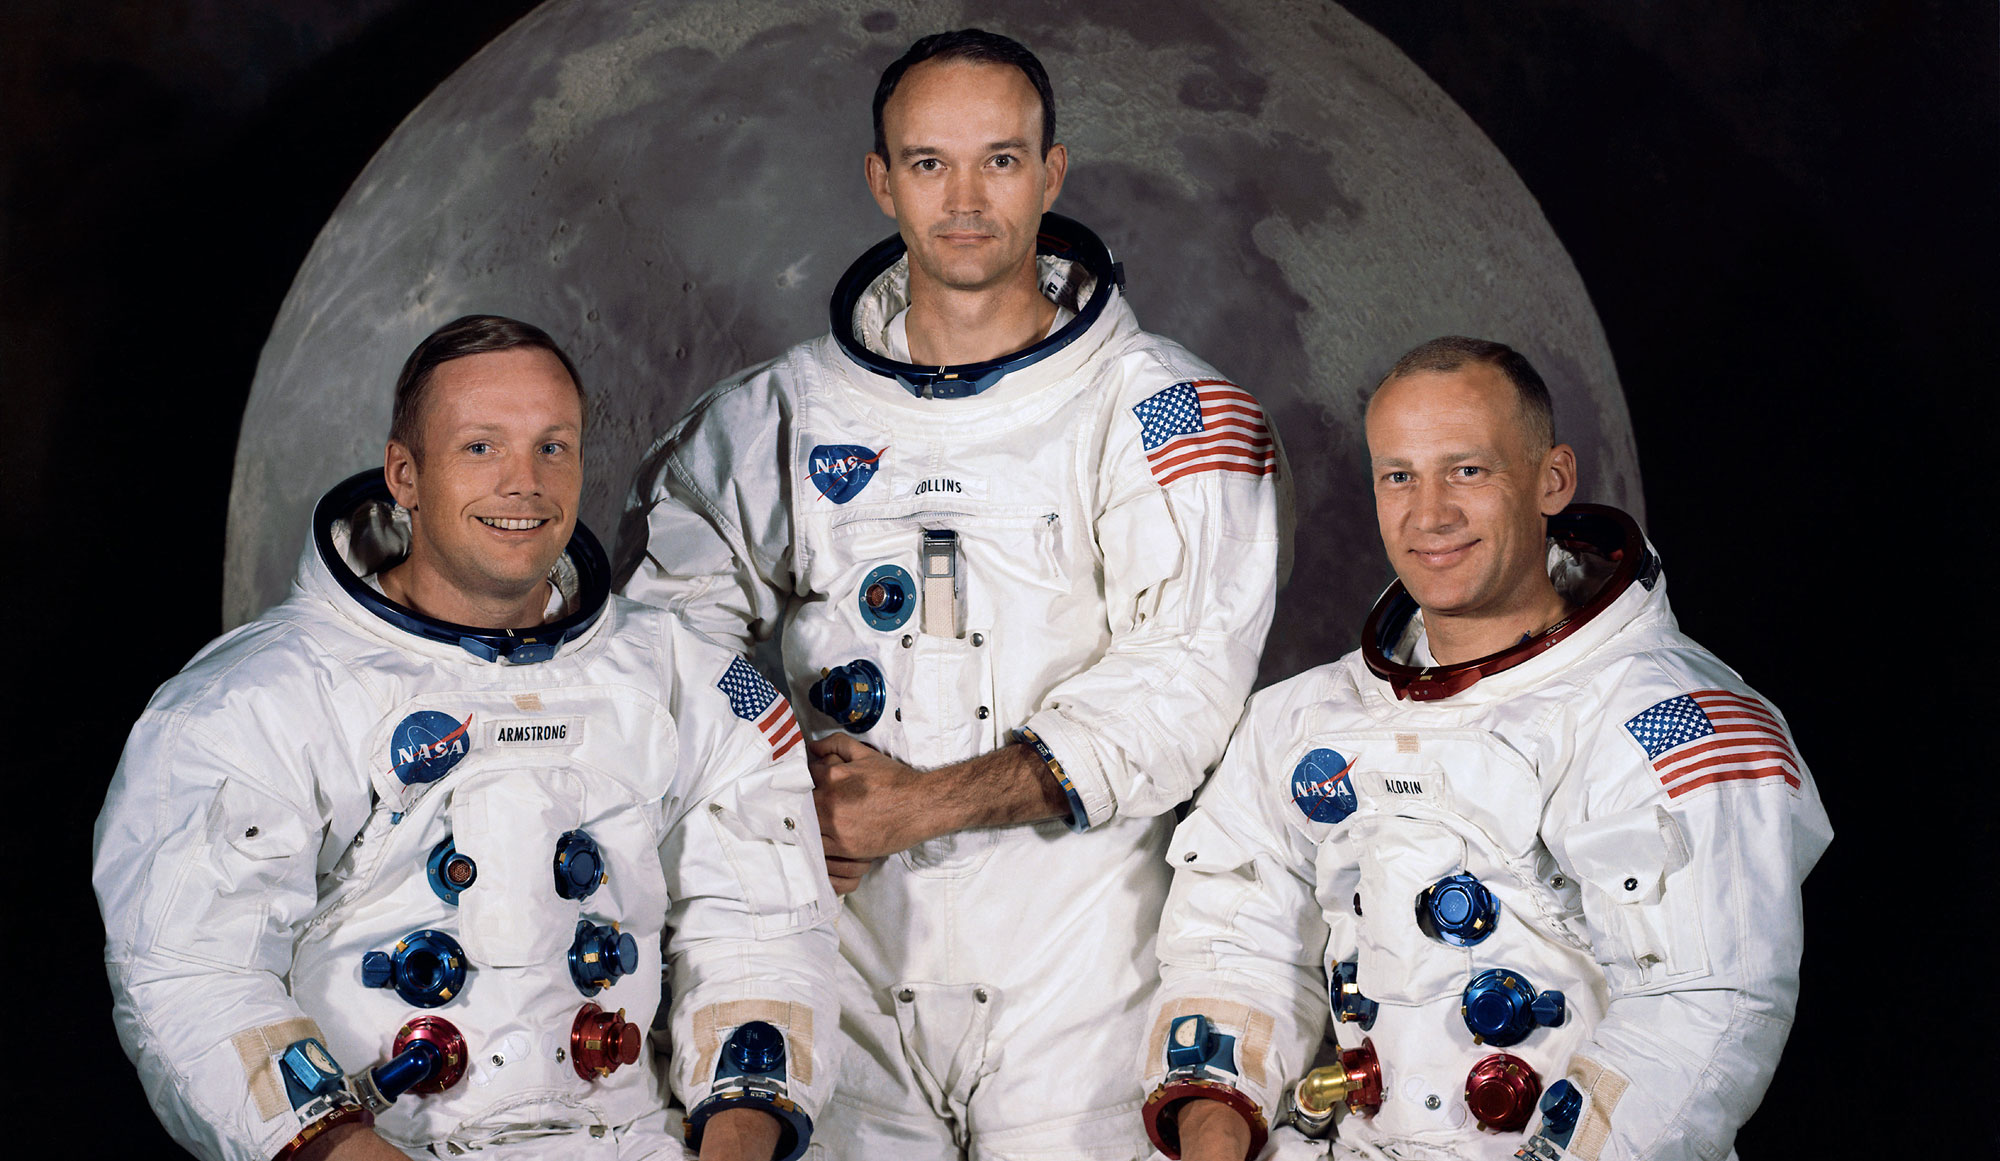 Buzz Aldrin and Michael Collins, Emmy winners? One small step for man, one giant leap for their cinematography in 'Apollo 11'